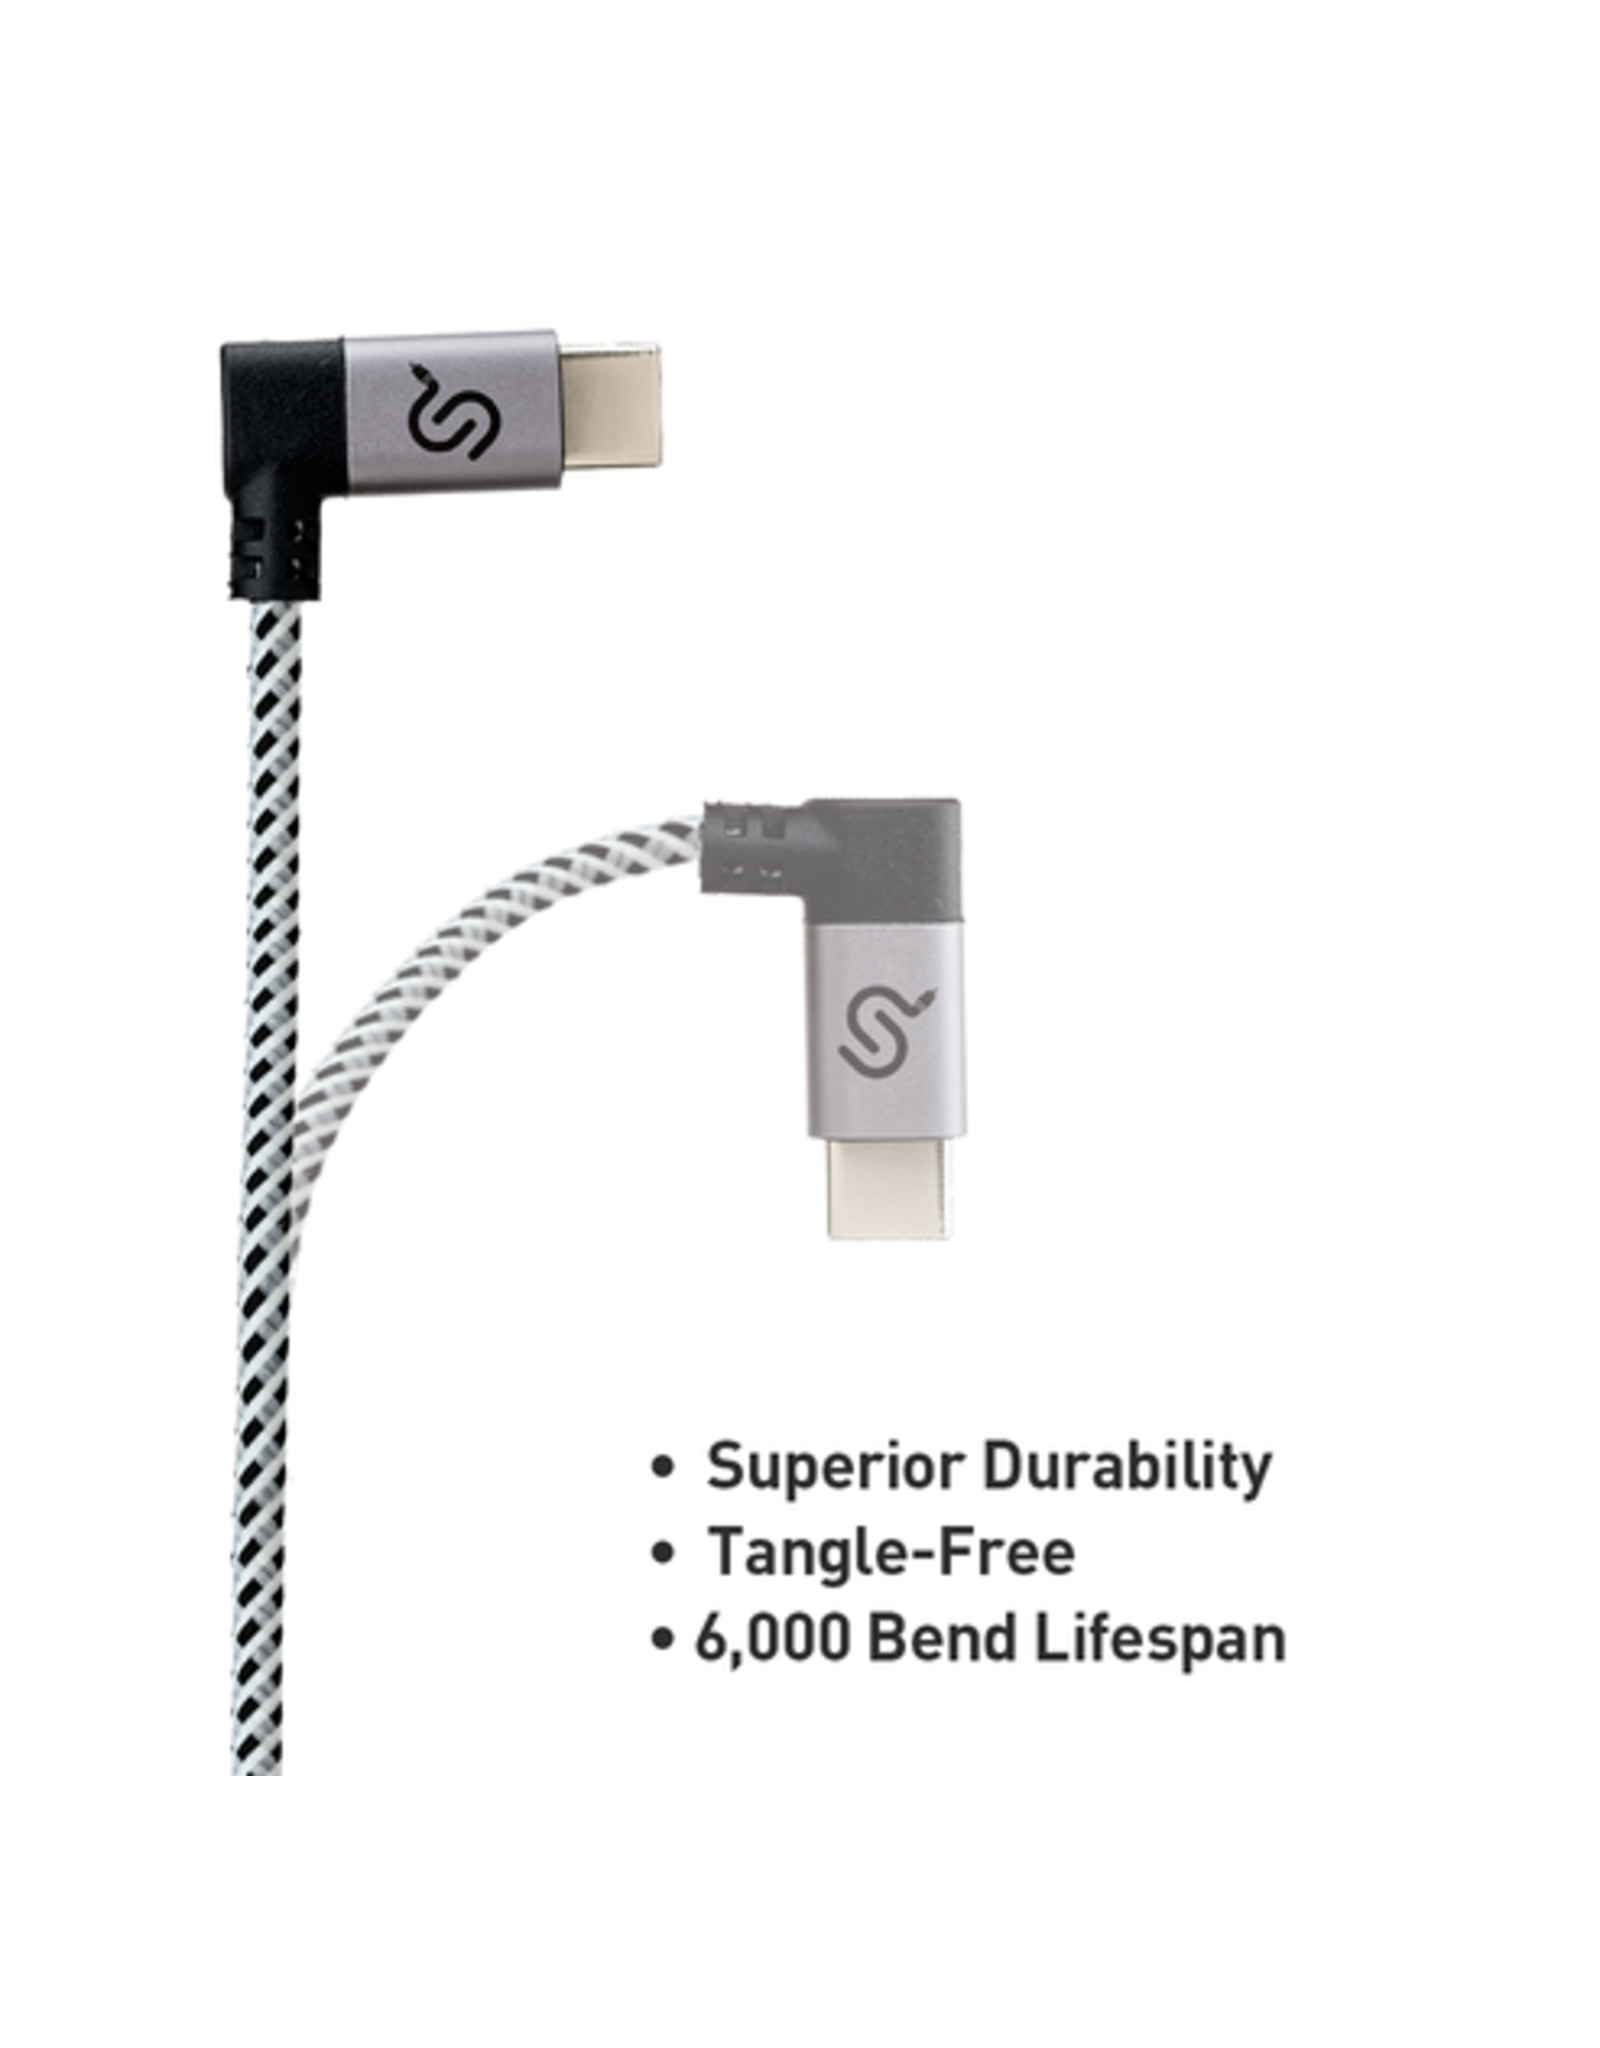 USB C Cable Right Angle 90 Degree Nylon Braided USB Type C Cable Fast Charging Cord